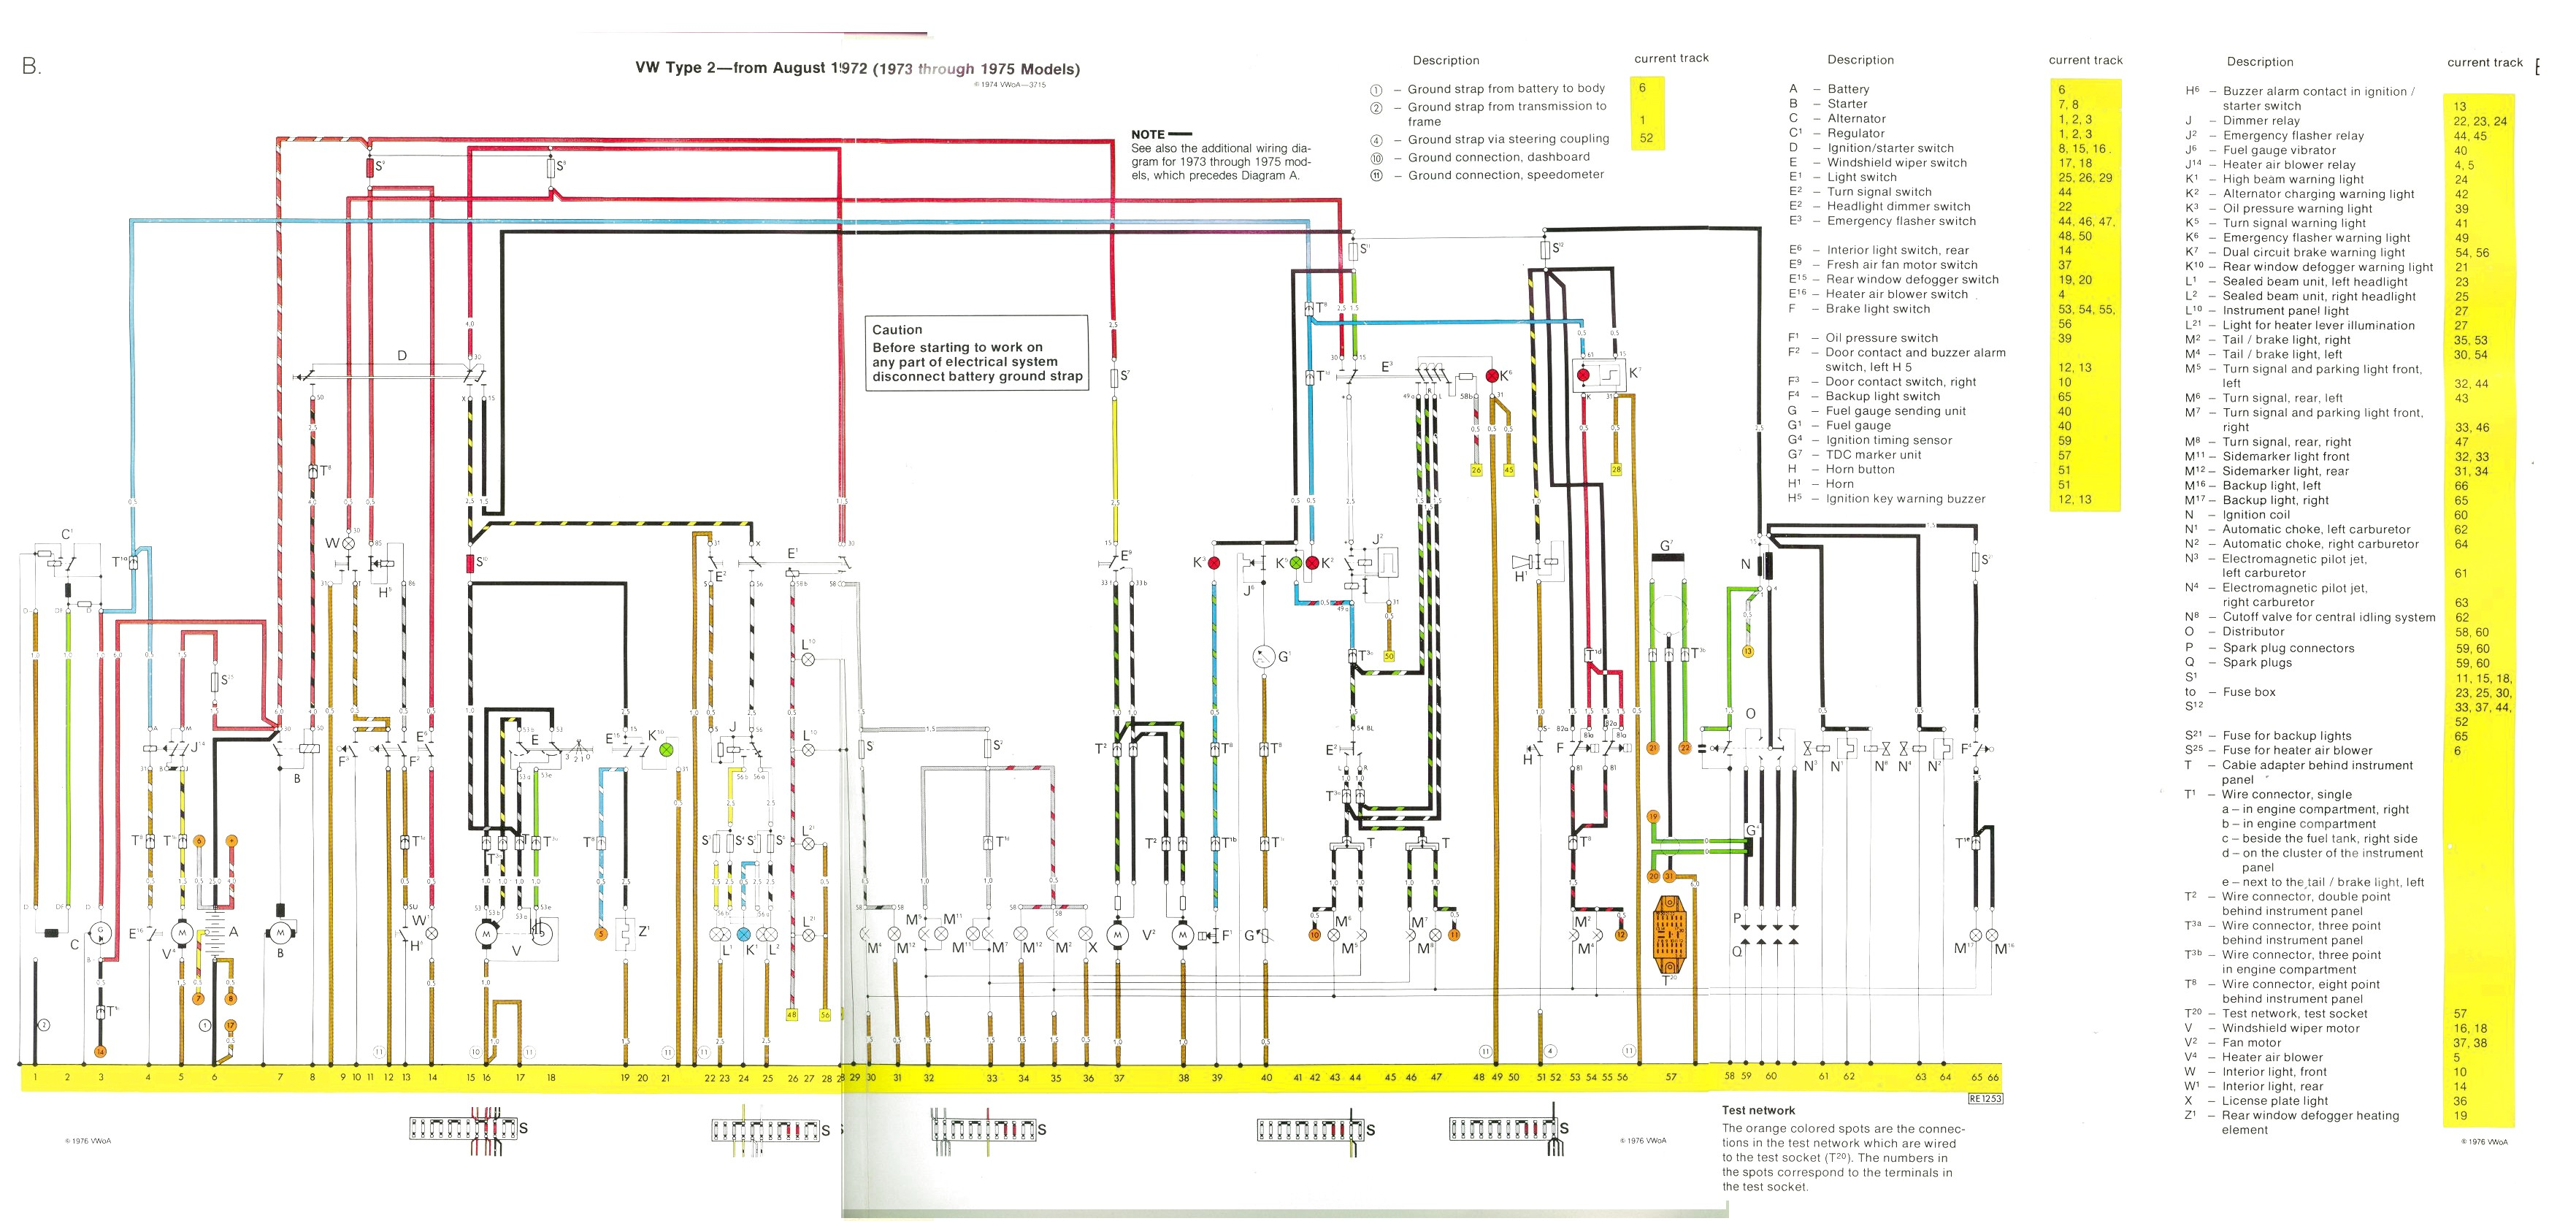 76 Vw Bus Wiring Diagram Nice Place To Get 1967 Engine Vintagebus Com And Other Diagrams Rh 1970